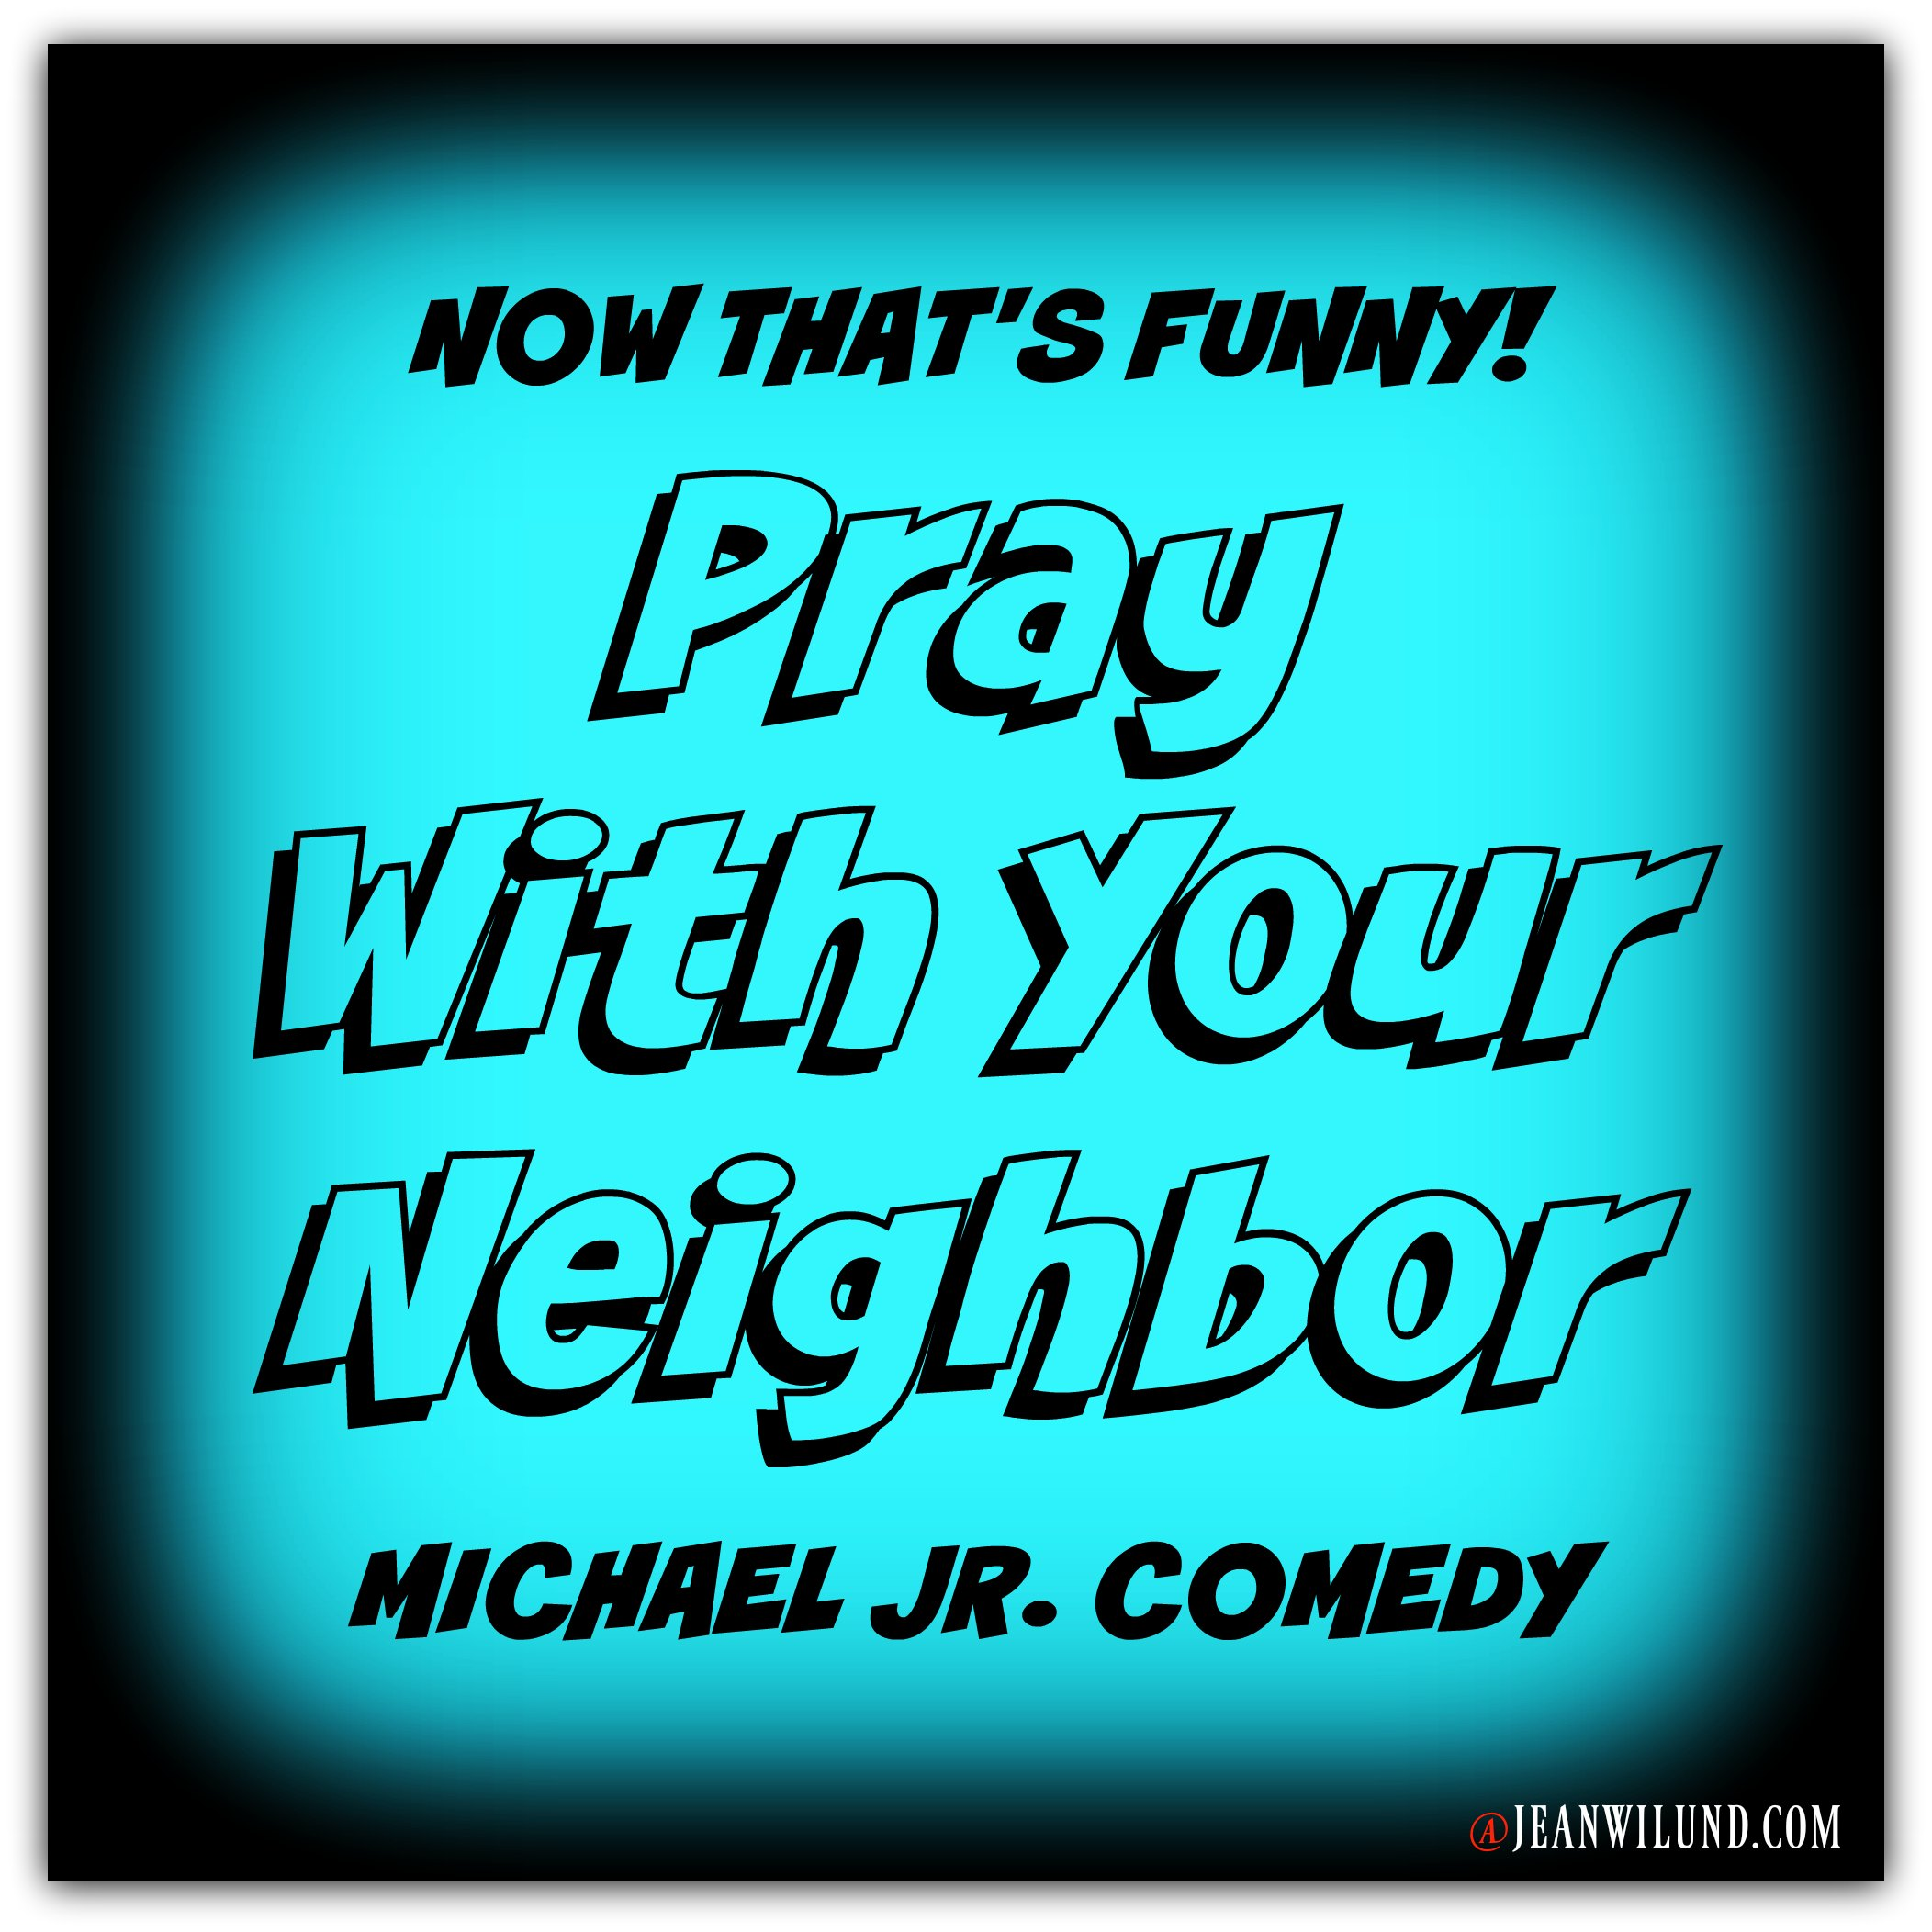 Pray With Your Neighbor by Michael Jr Comedy via www.JeanWilund.com